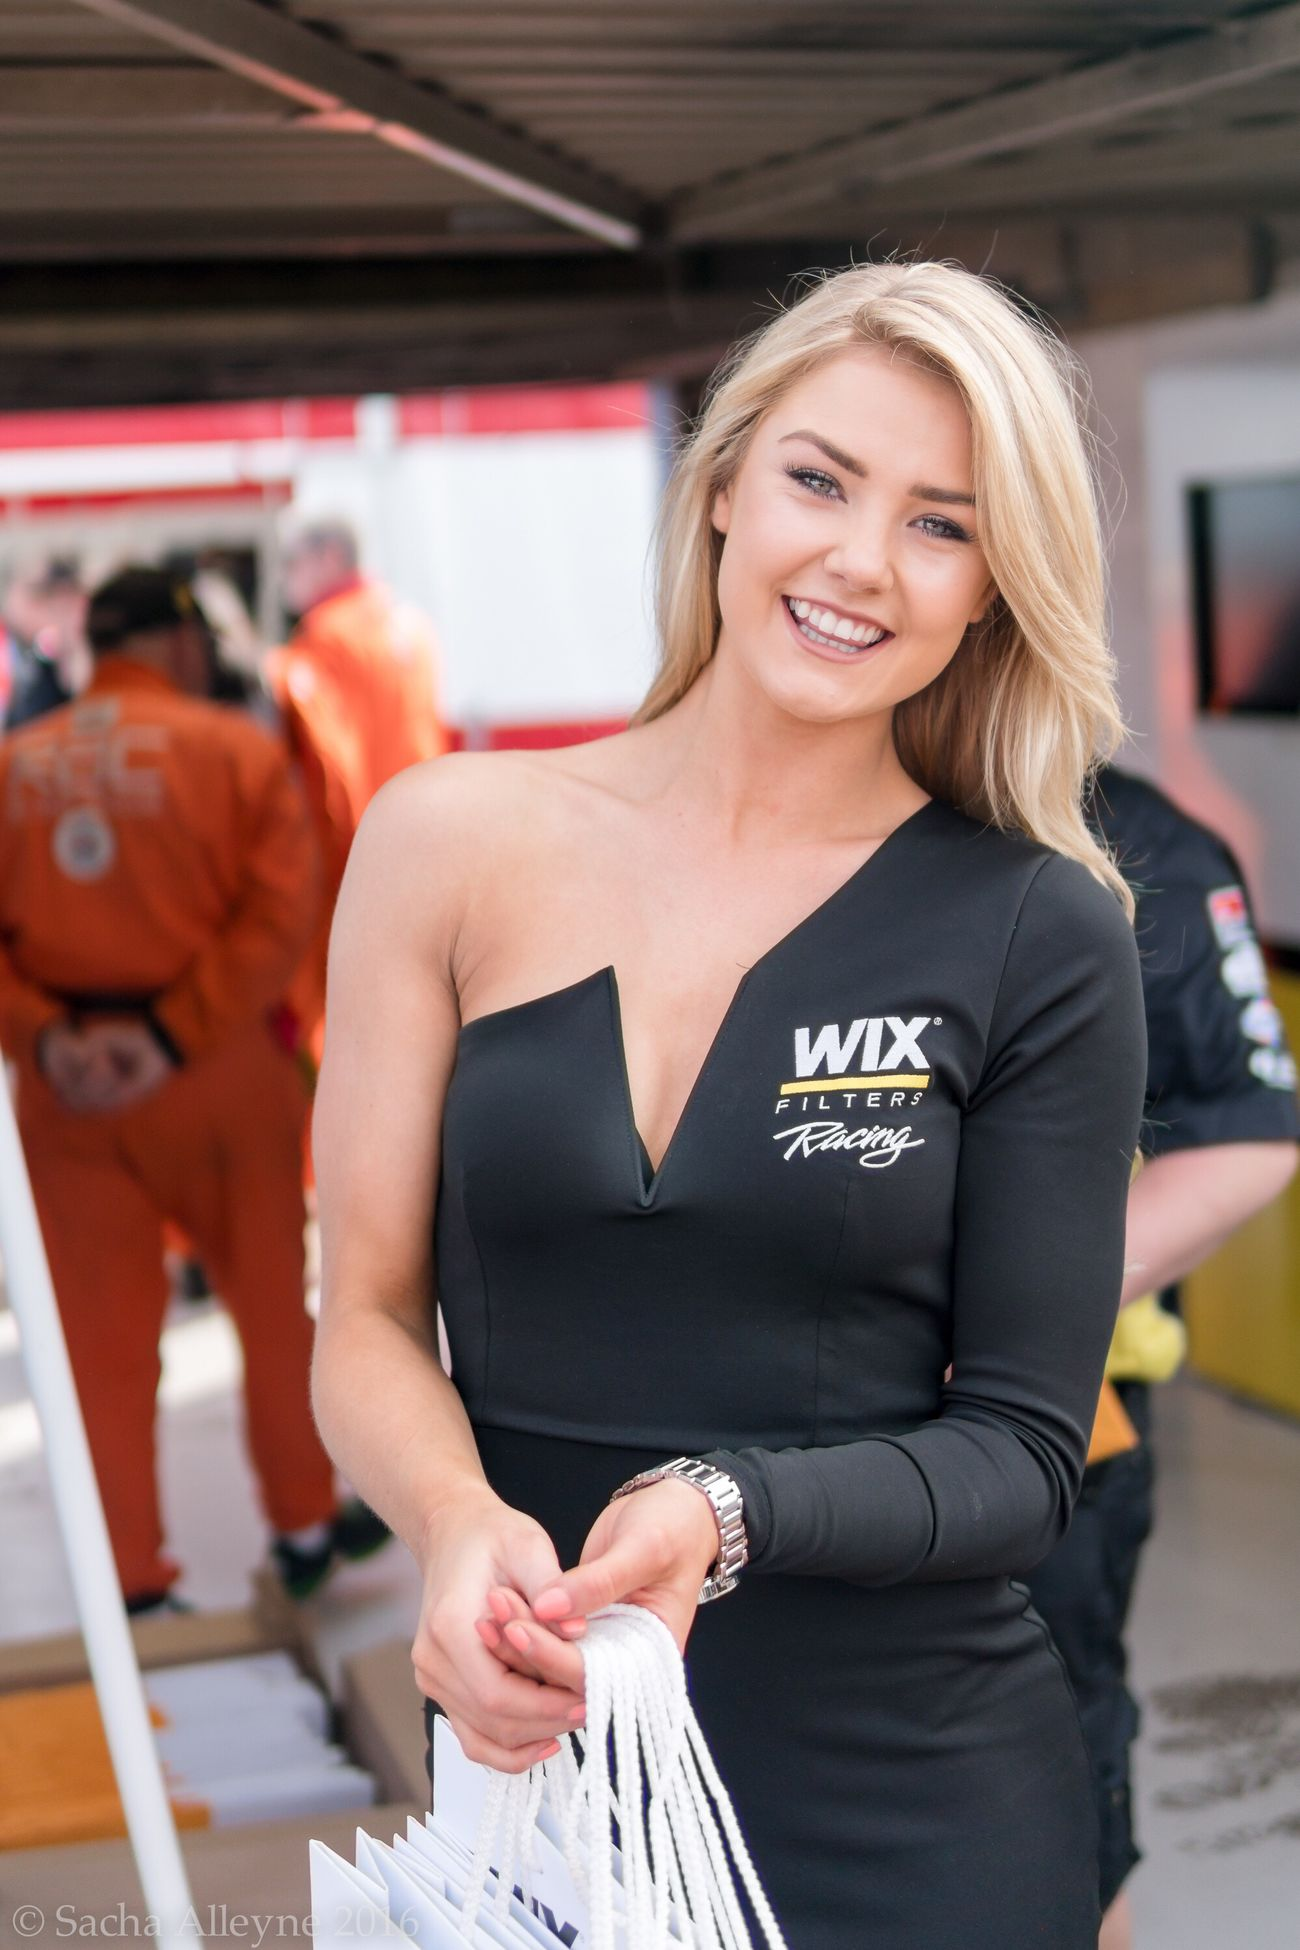 Only Women One Woman Only Looking At Camera Blond Hair Smiling Britishtouringcars Looking At Camera British Touring Car Championship Beautiful Grid Girl Gridgirls Pitlane Model Outdoors Beautiful Woman Portrait Woman Standing People One Person Day